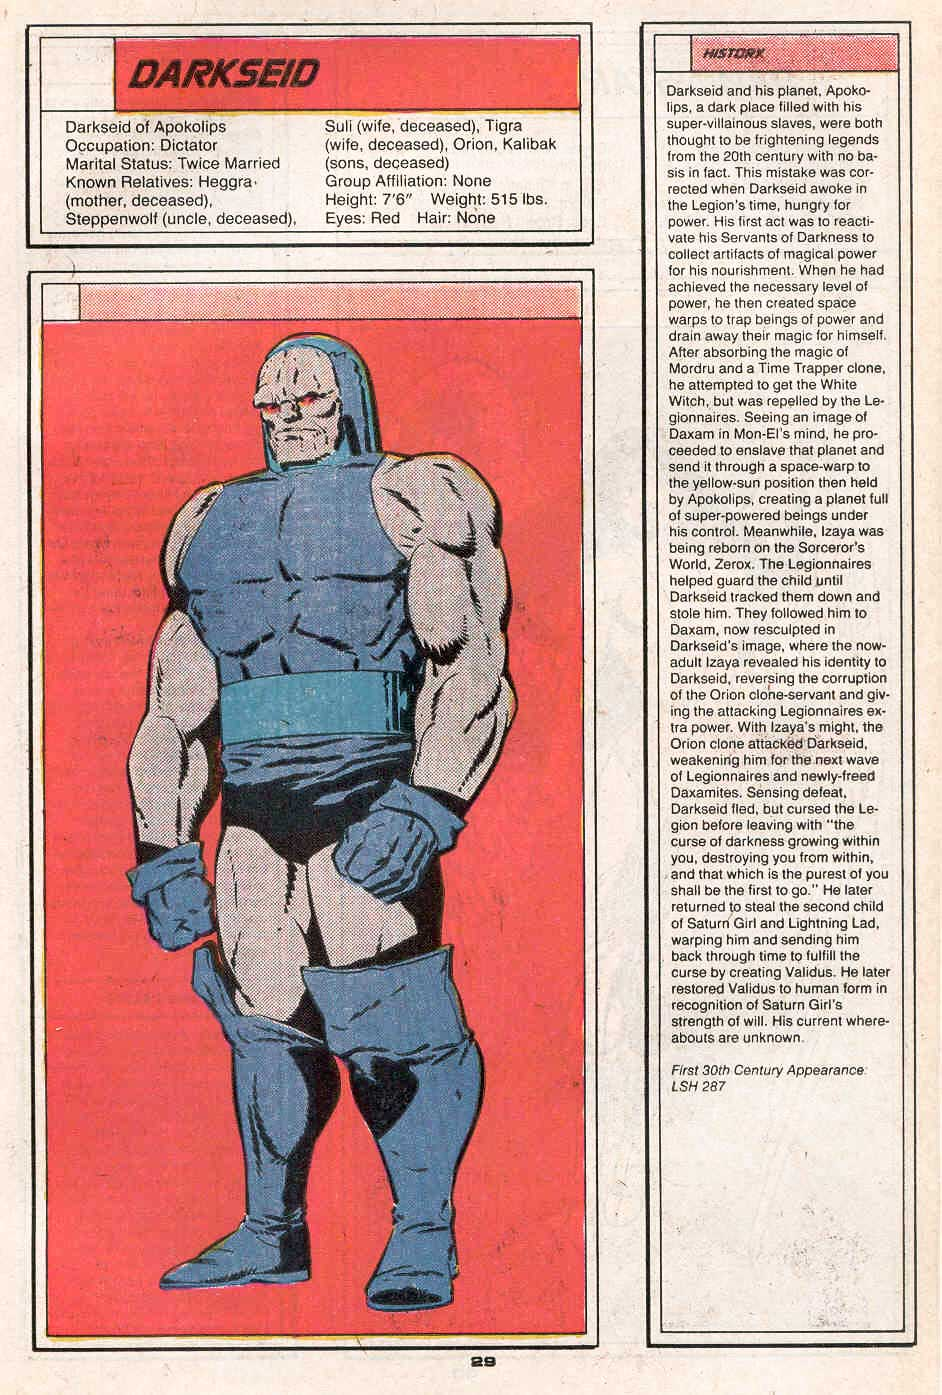 Darkseid by Keith Giffen and Grant Miehm - Who's Who in the Legion of Super-Heroes #1